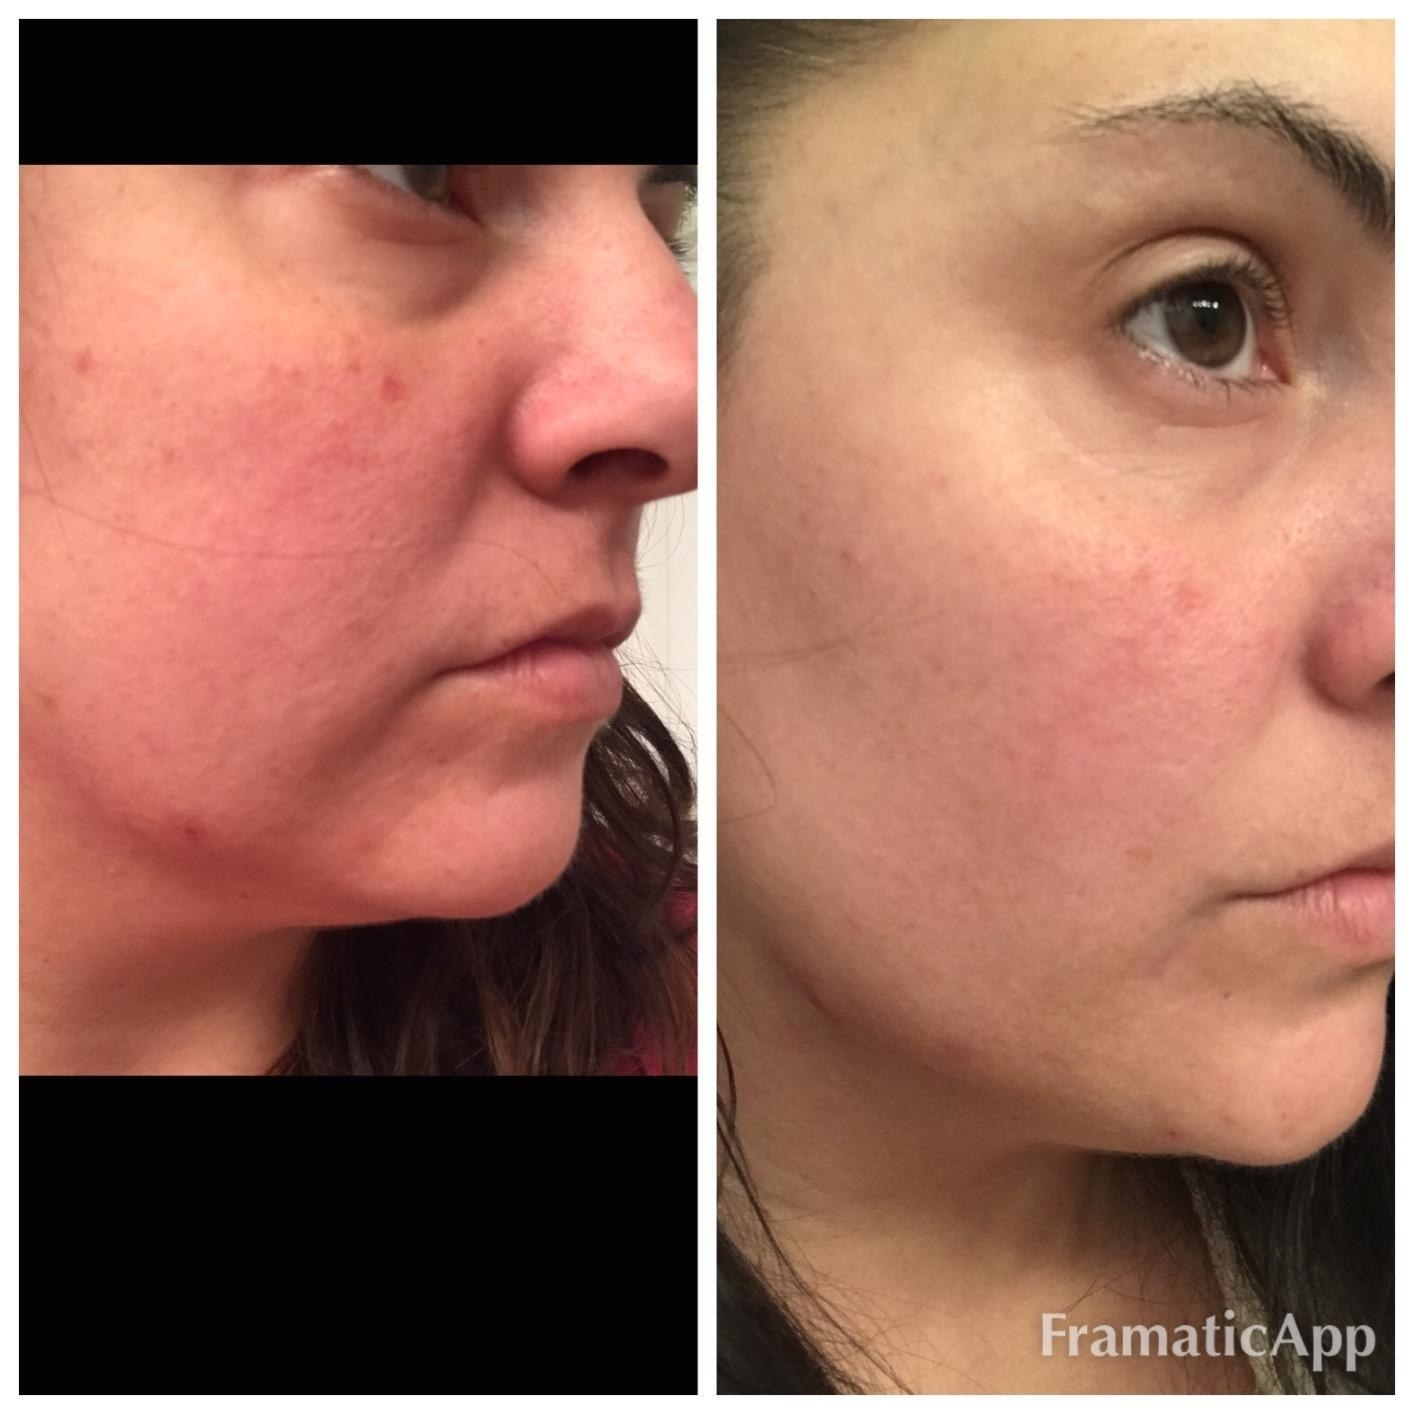 before and after of a reviewer with red flushed skin, then clear, more toned, less red skin after use of product